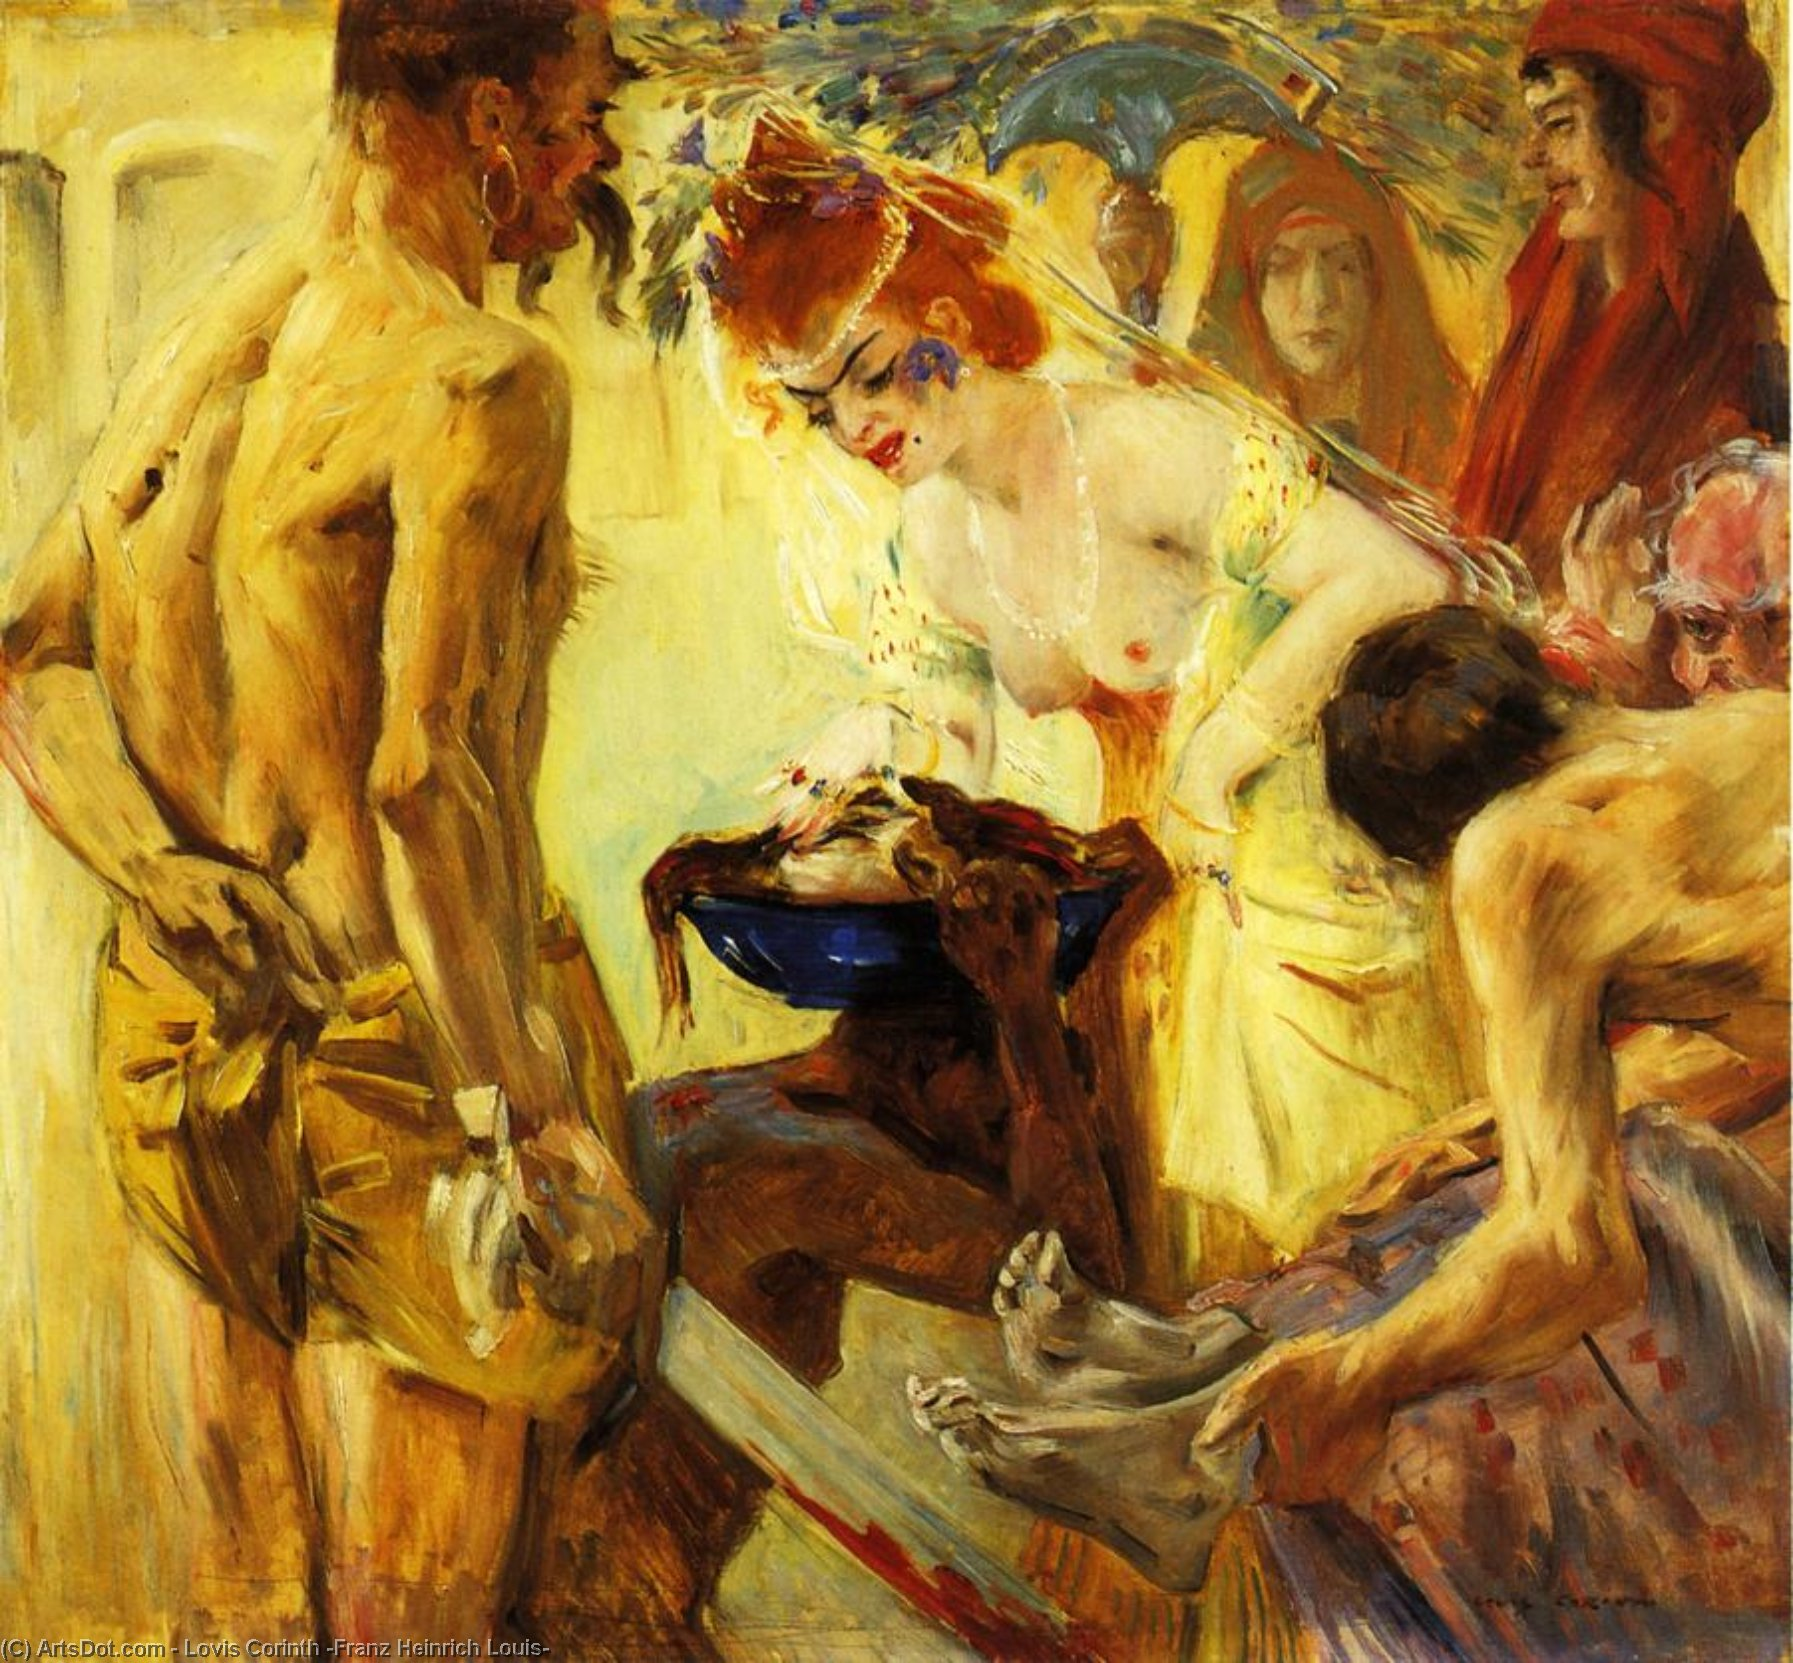 Salome, First Version, Oil On Canvas by Lovis Corinth (Franz Heinrich Louis) (1858-1925, Netherlands)